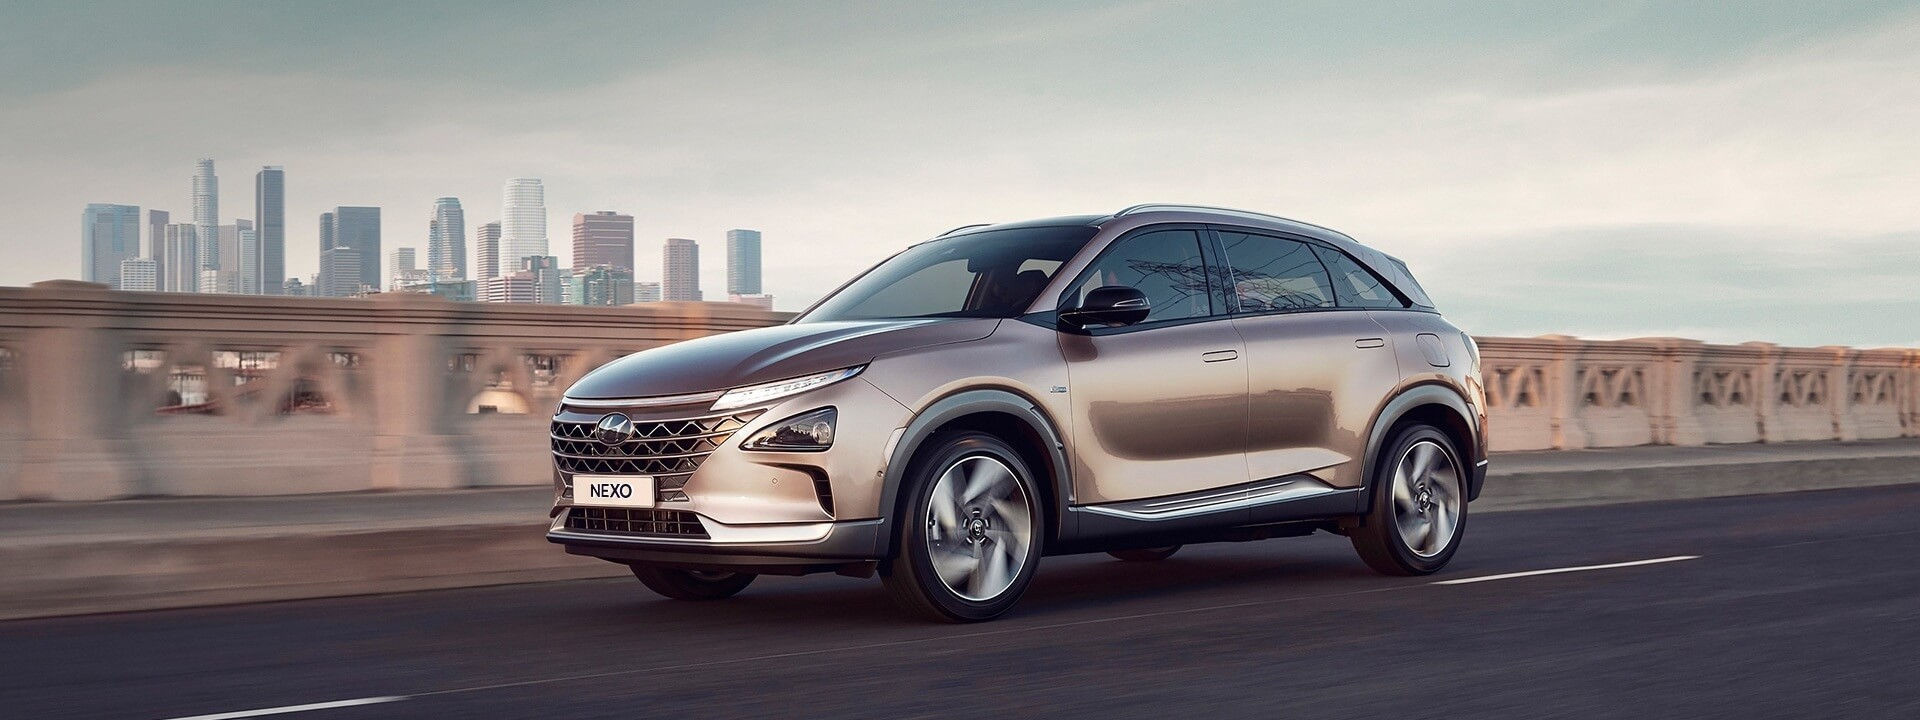 Hyundai Motor offers a glimpse of smart future mobility in new brand campaign #BecauseofYou.